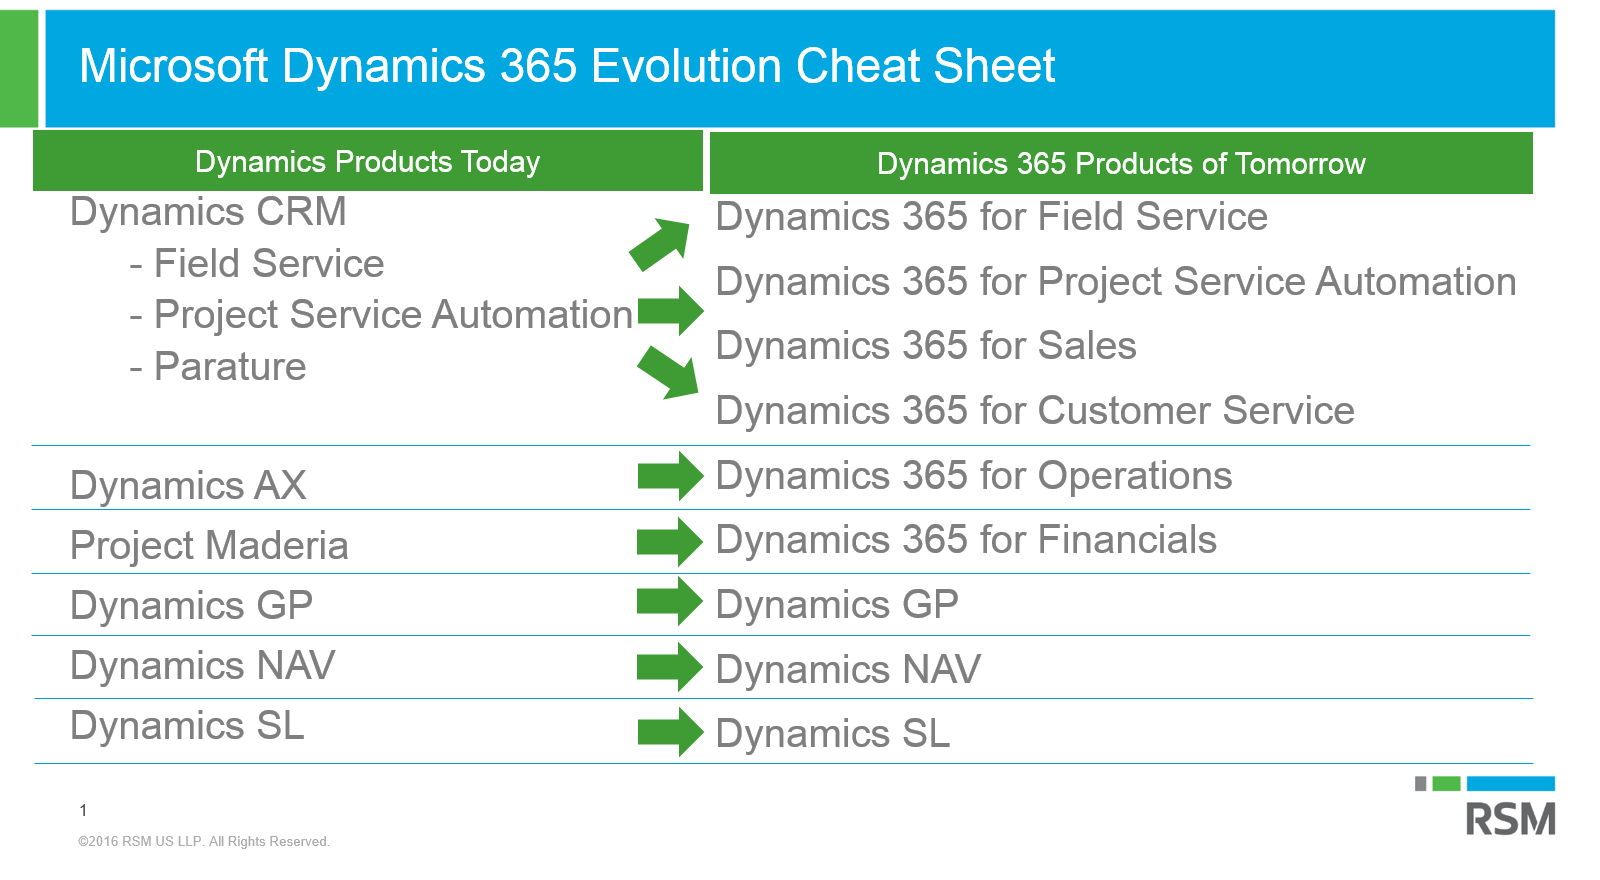 Microsoft Dynamics 365 Product Suite - 6 Amazing New Products